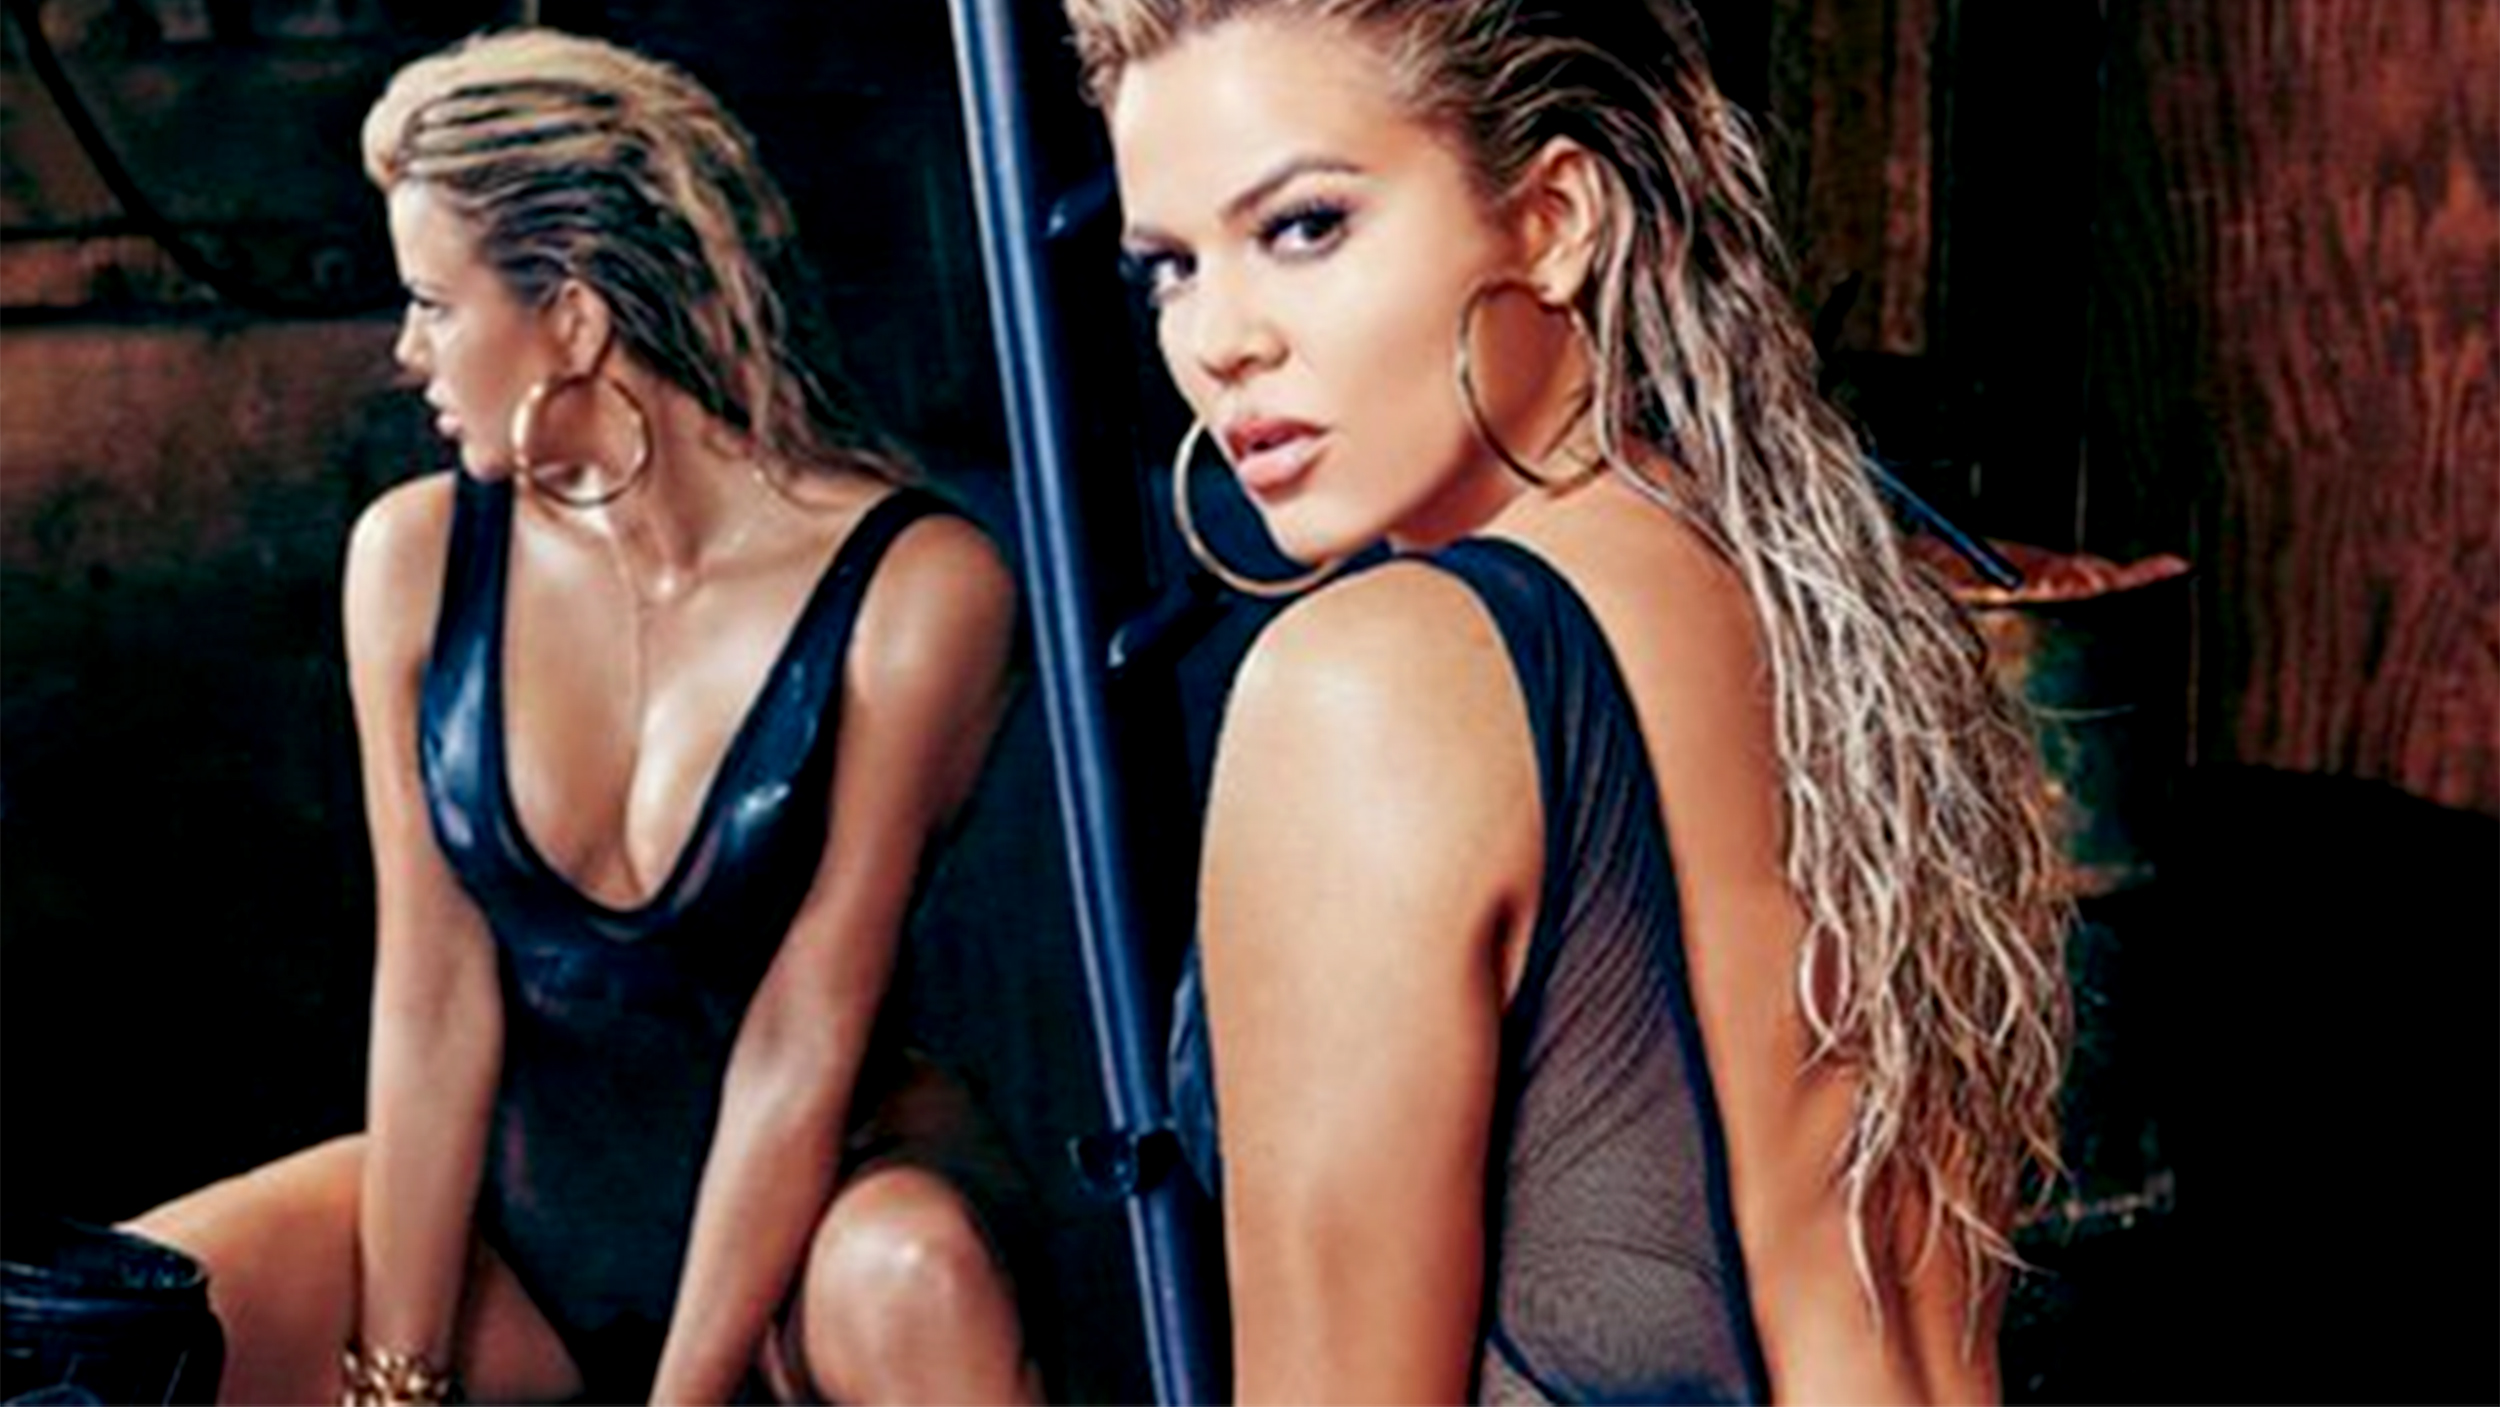 Khloe Kardashian Posts Unretouched Complex Photo Give